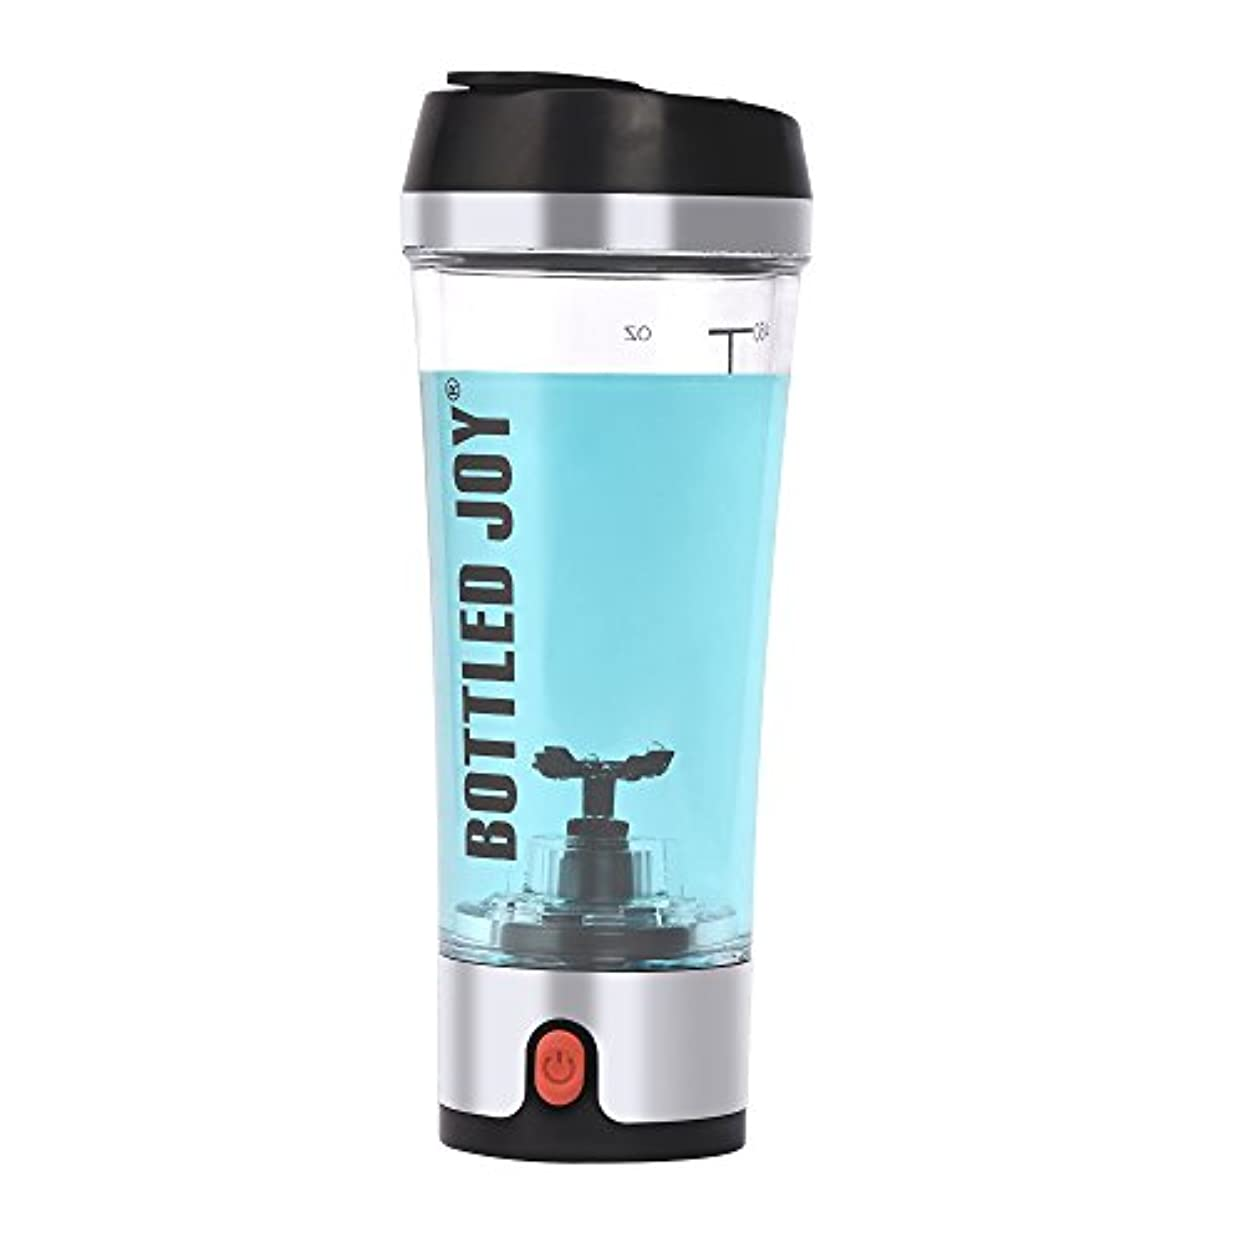 バイオレットラメ入植者Bottled Joy Electric Shaker Bottle、USB Rechargeable Protein Shaker、high-torque Stirring Blenderミキサーのスポーツマンと女性16oz...